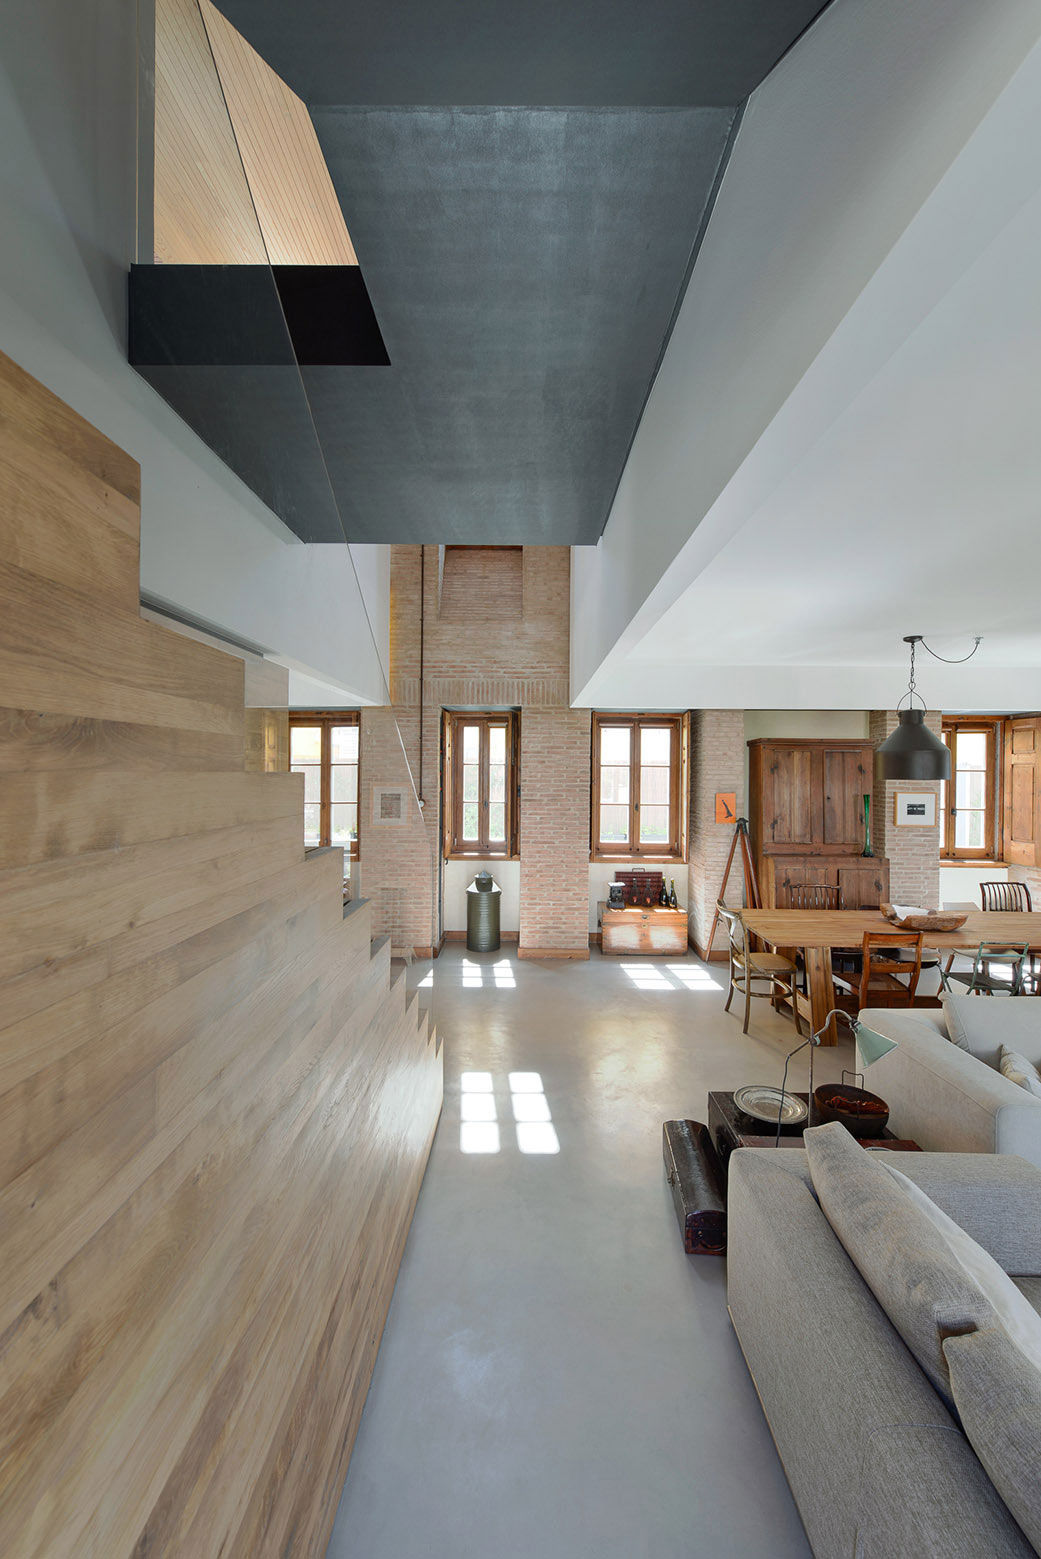 Renovation of a 1923 House in Estoril by Ricardo Moreno Arquitectos-09